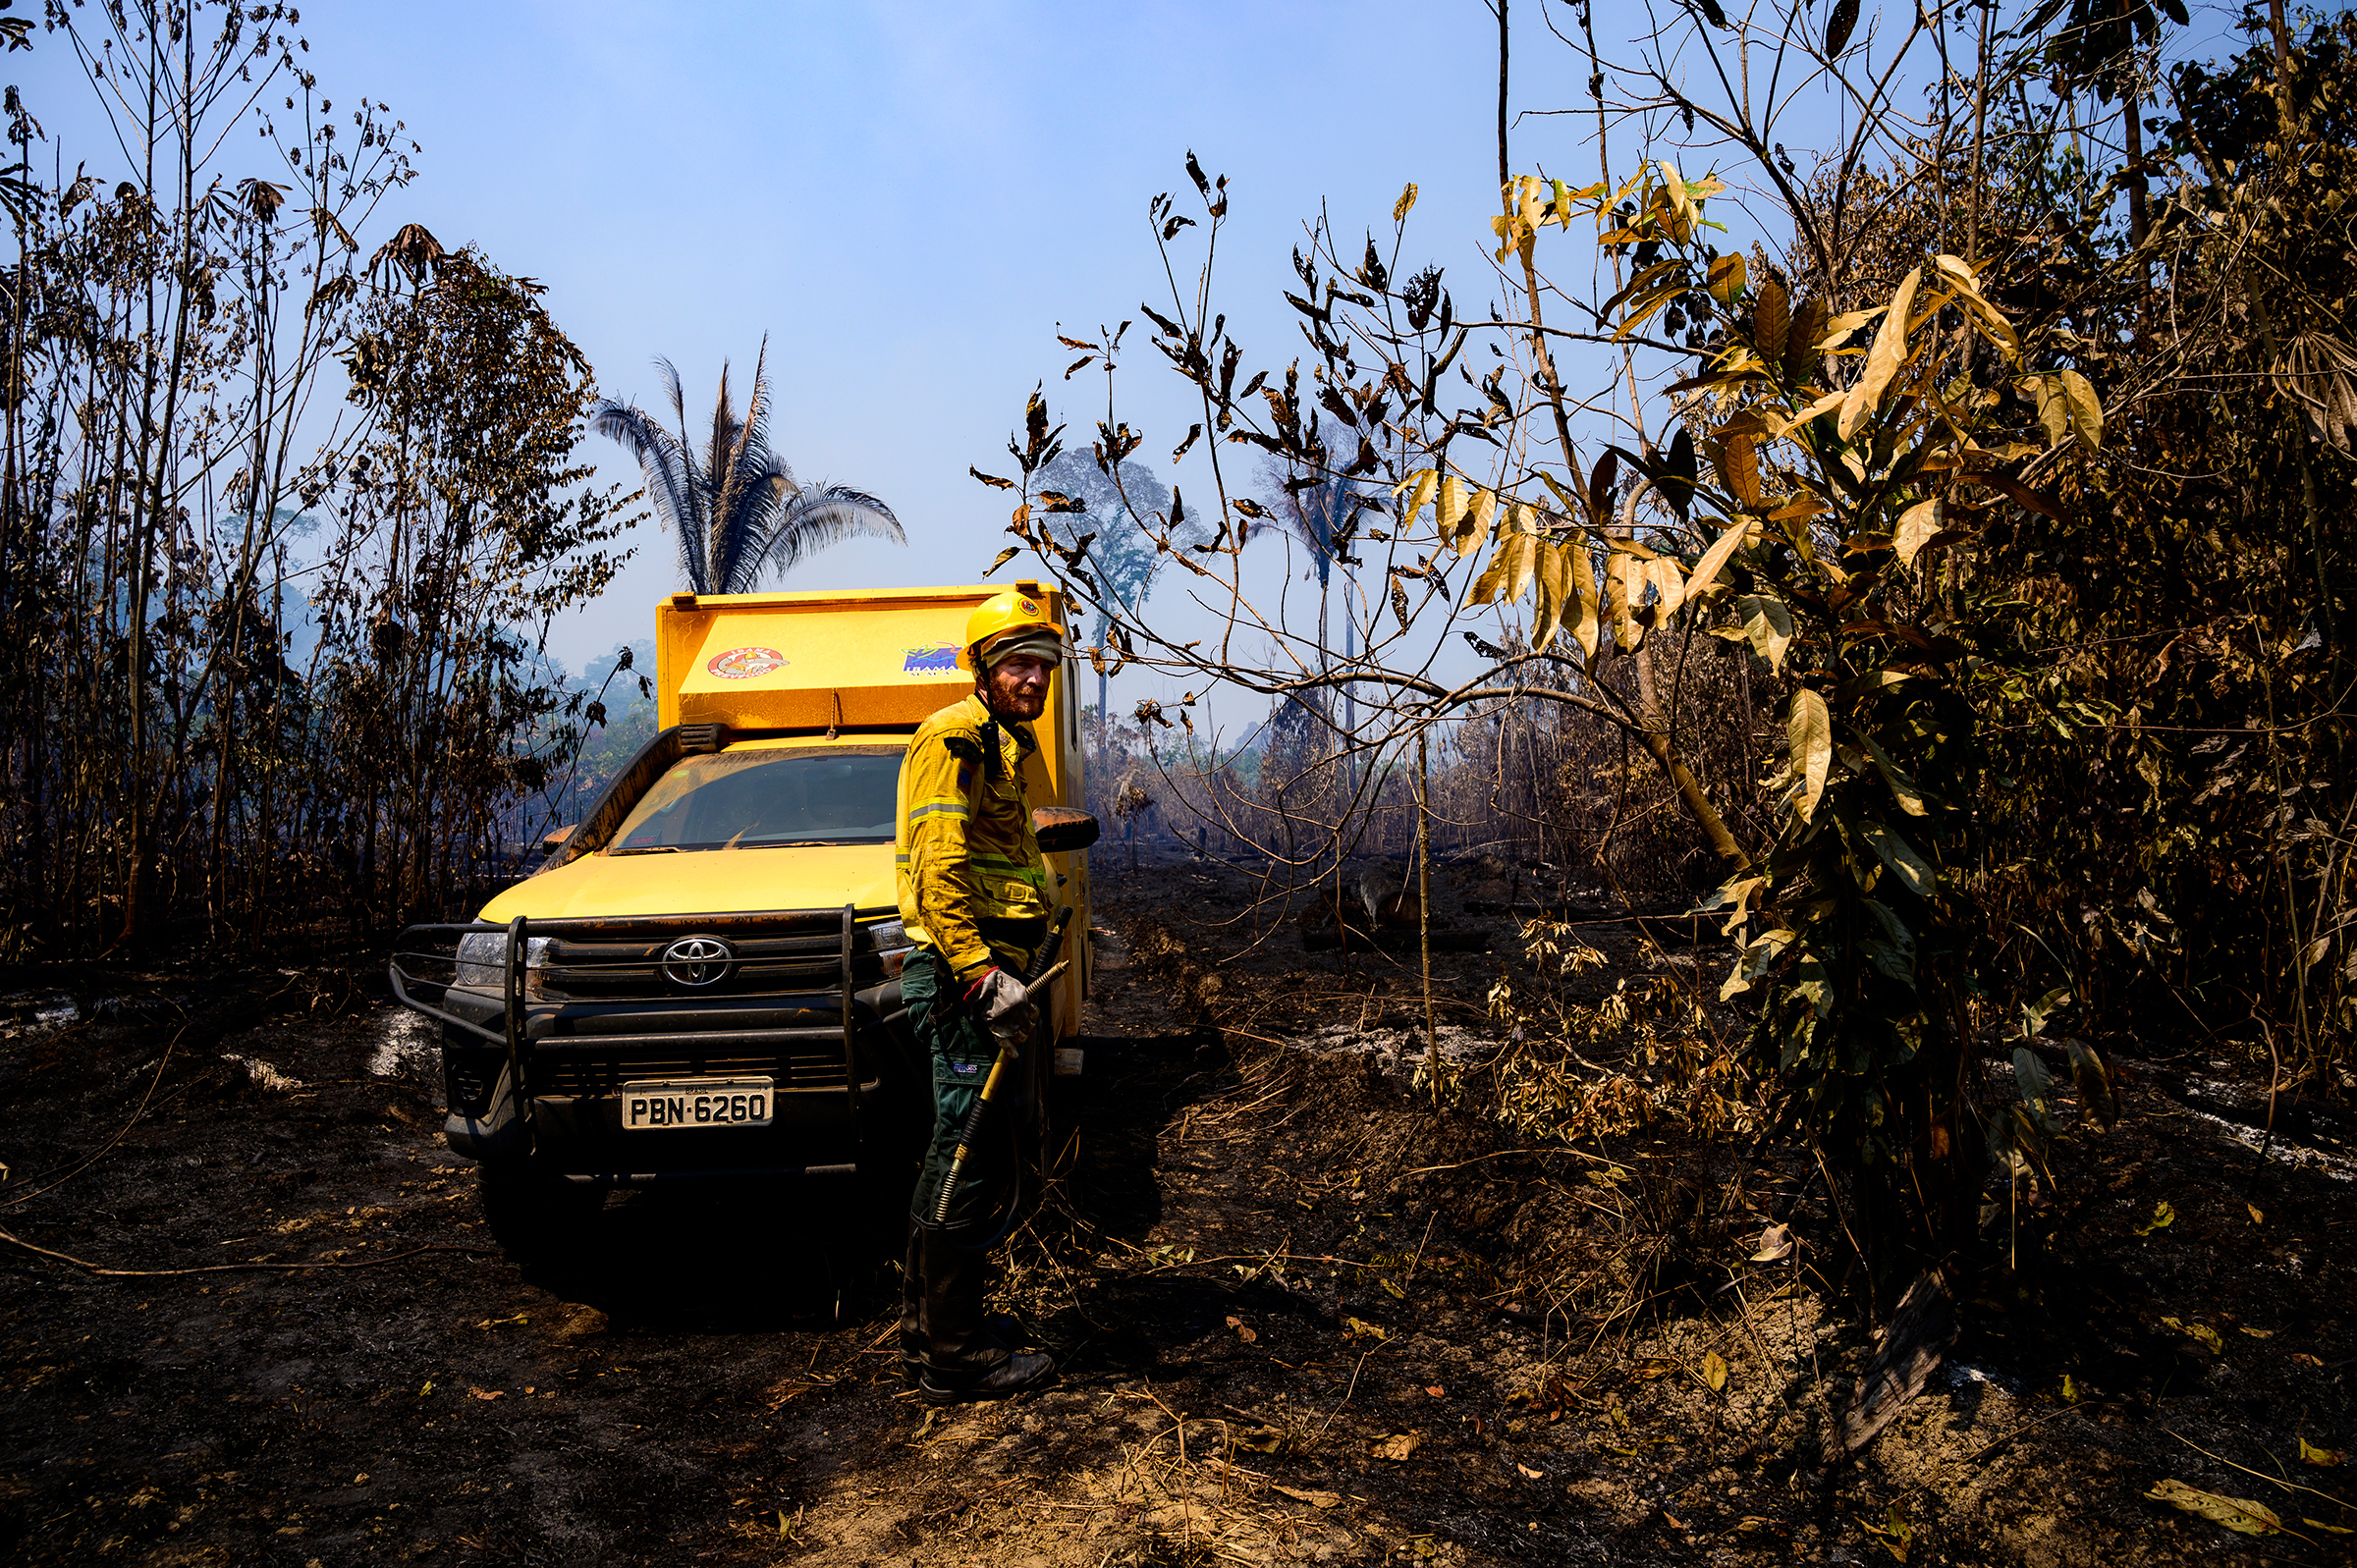 A worker and vehicle from Brazil's environmental agency, IBAMA, in a recently burned section of forest in the Vila Nova Samuel region on Aug. 28.